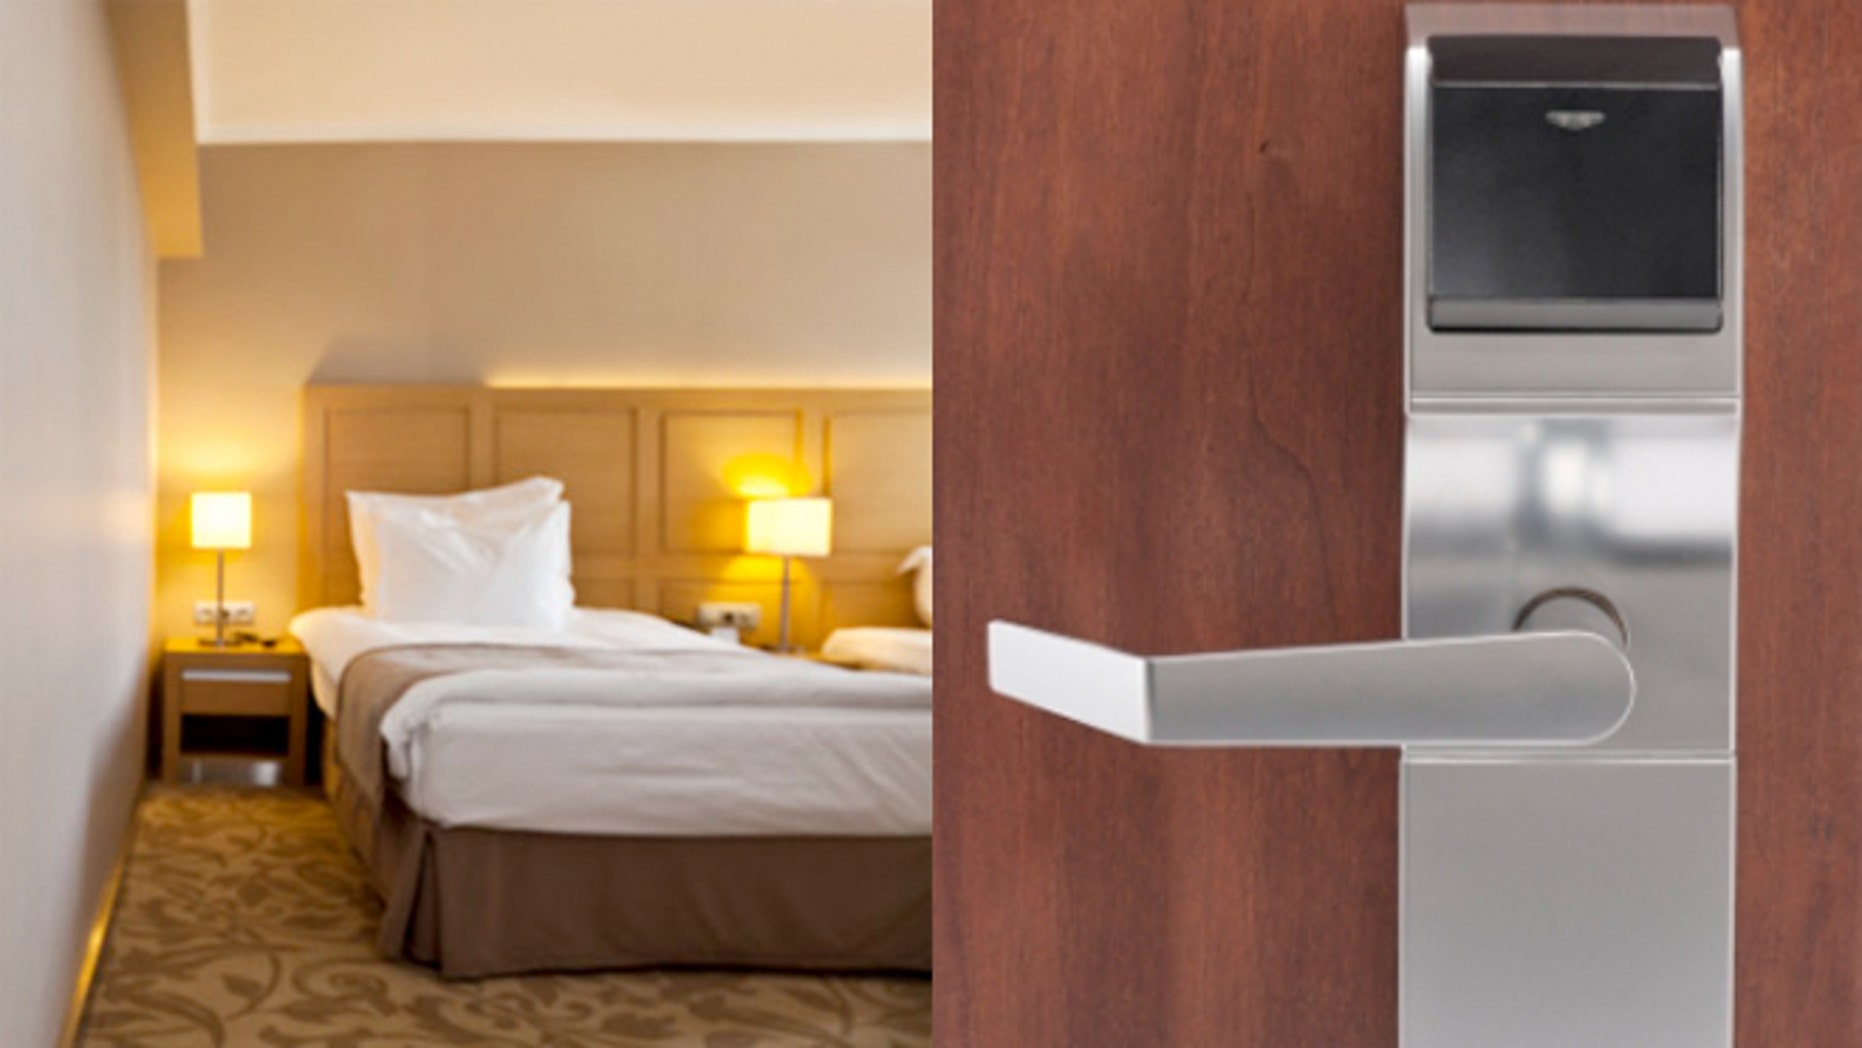 Hotels scramble for security solutions after hackers